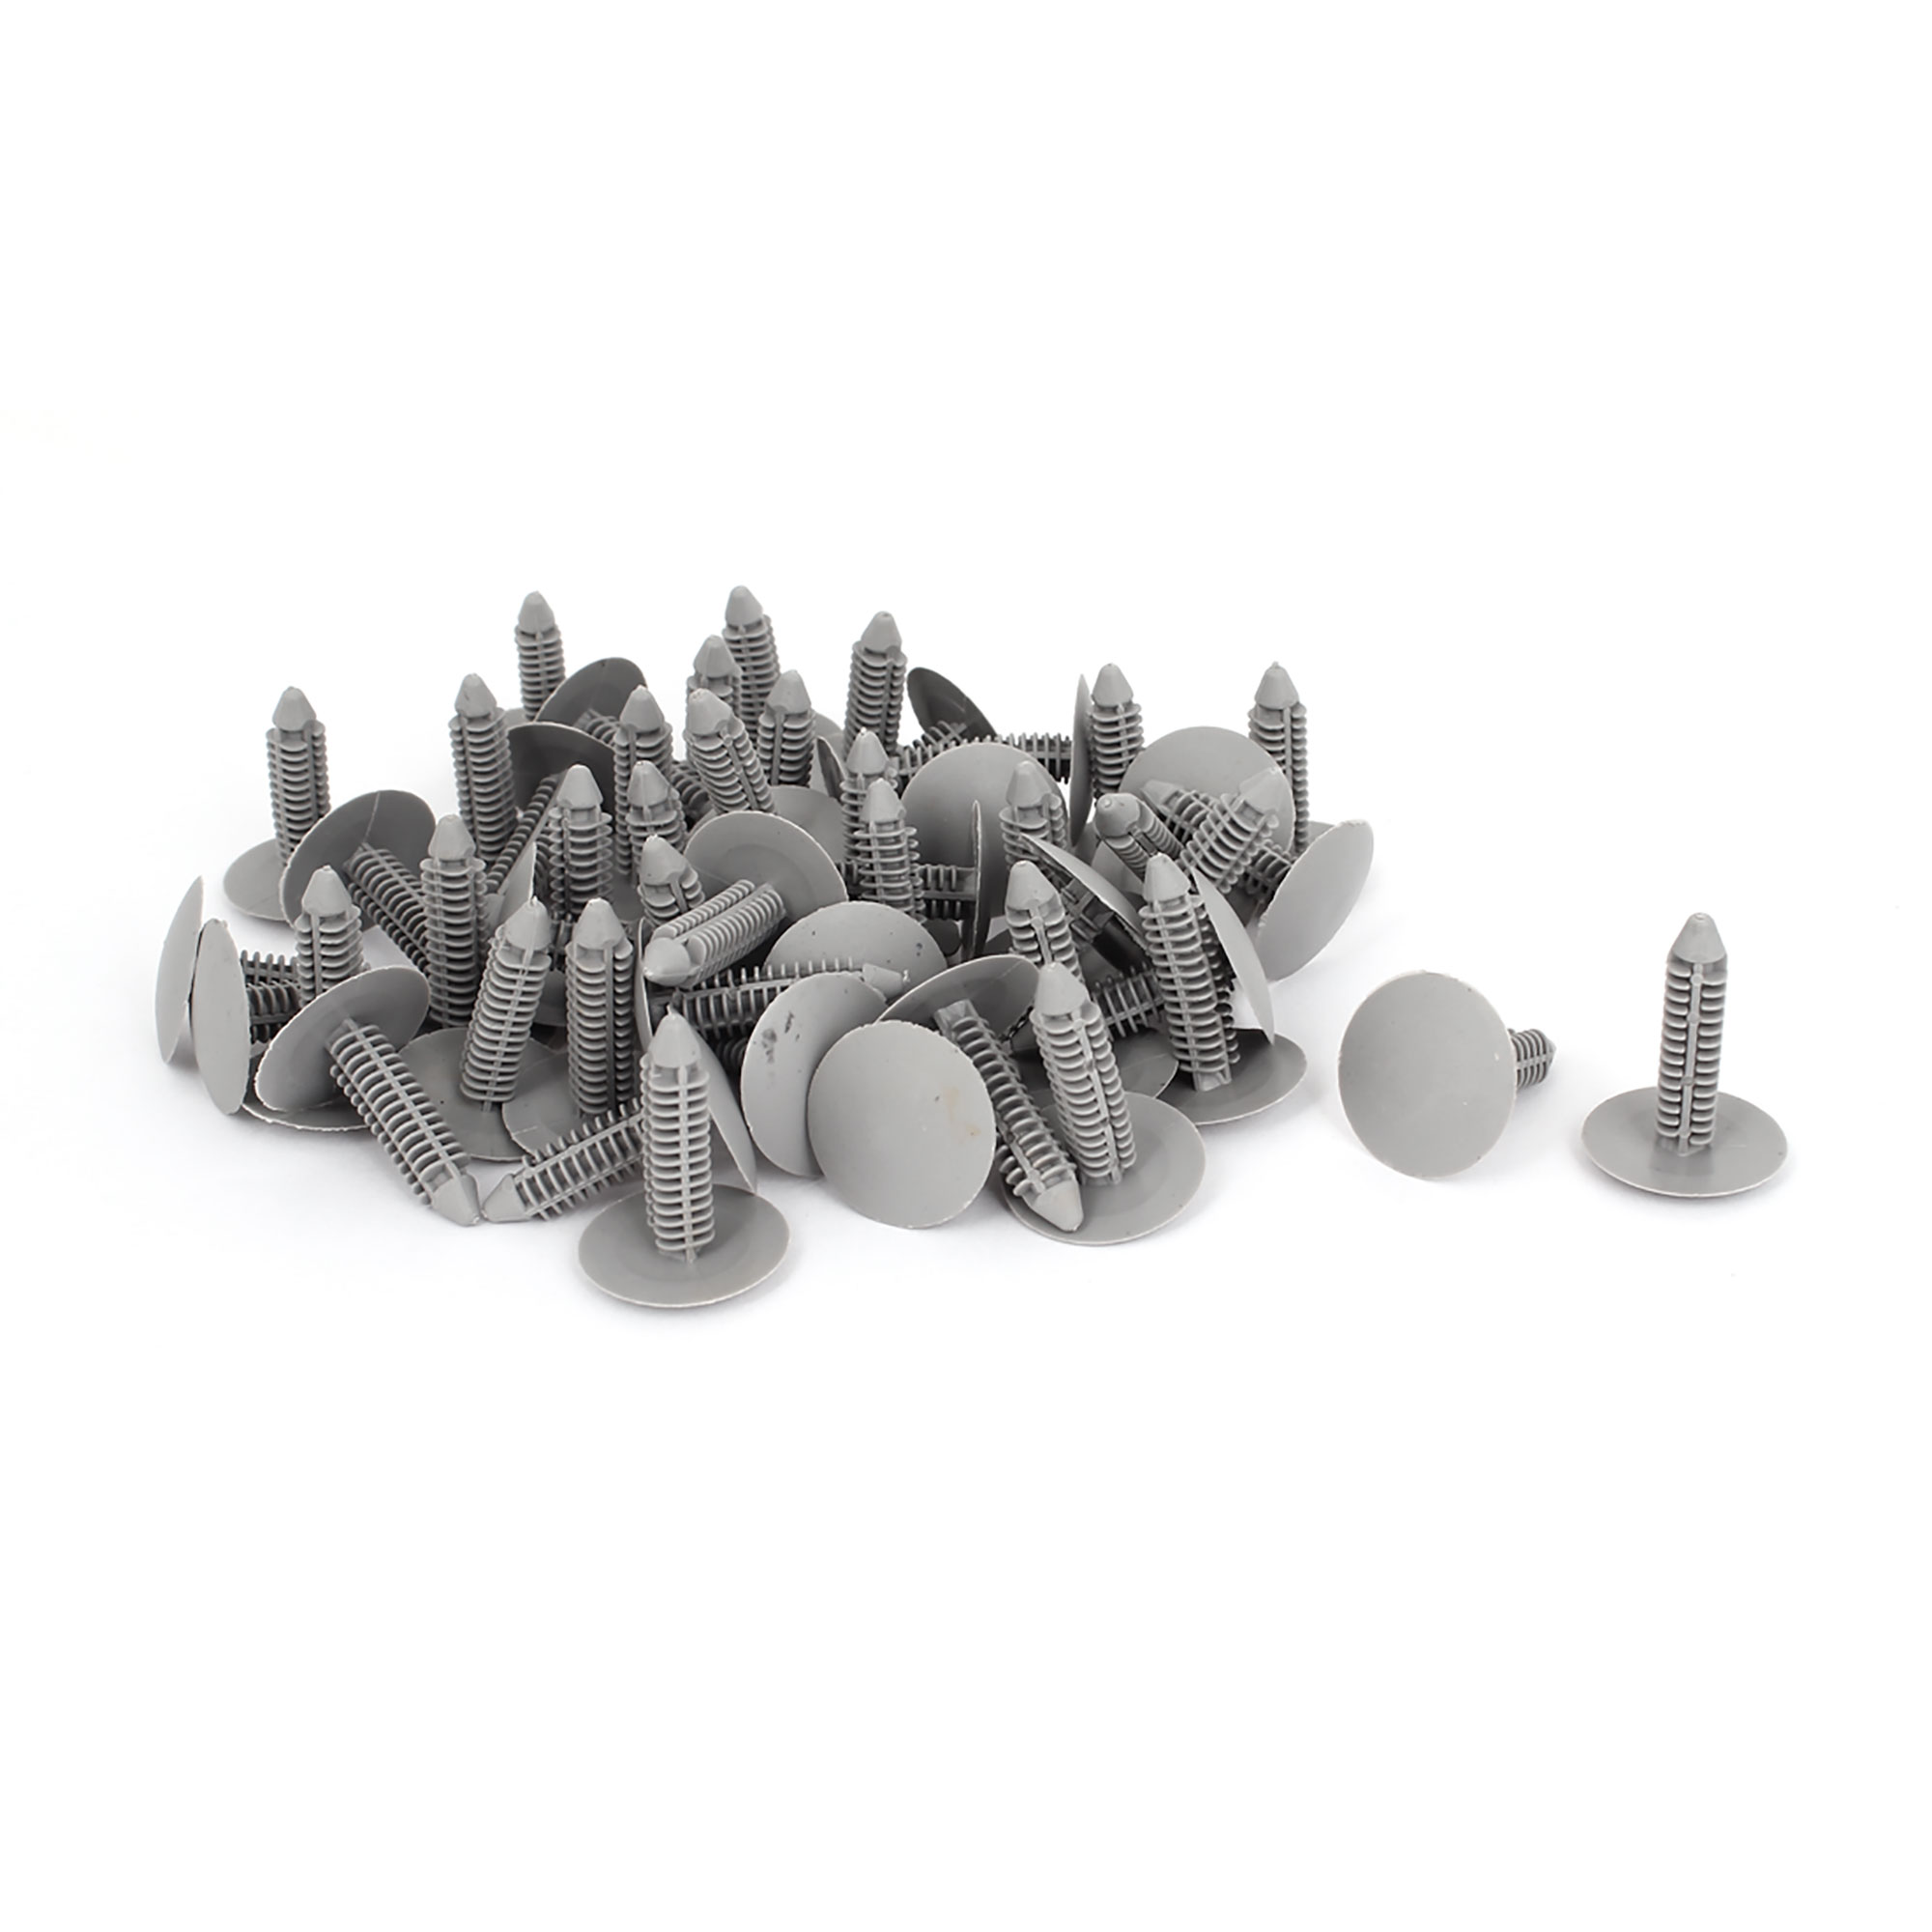 50 Pcs Gray Plastic Rivet Trim Fastener Moulding Clips 8mm x 25mm x 31mm